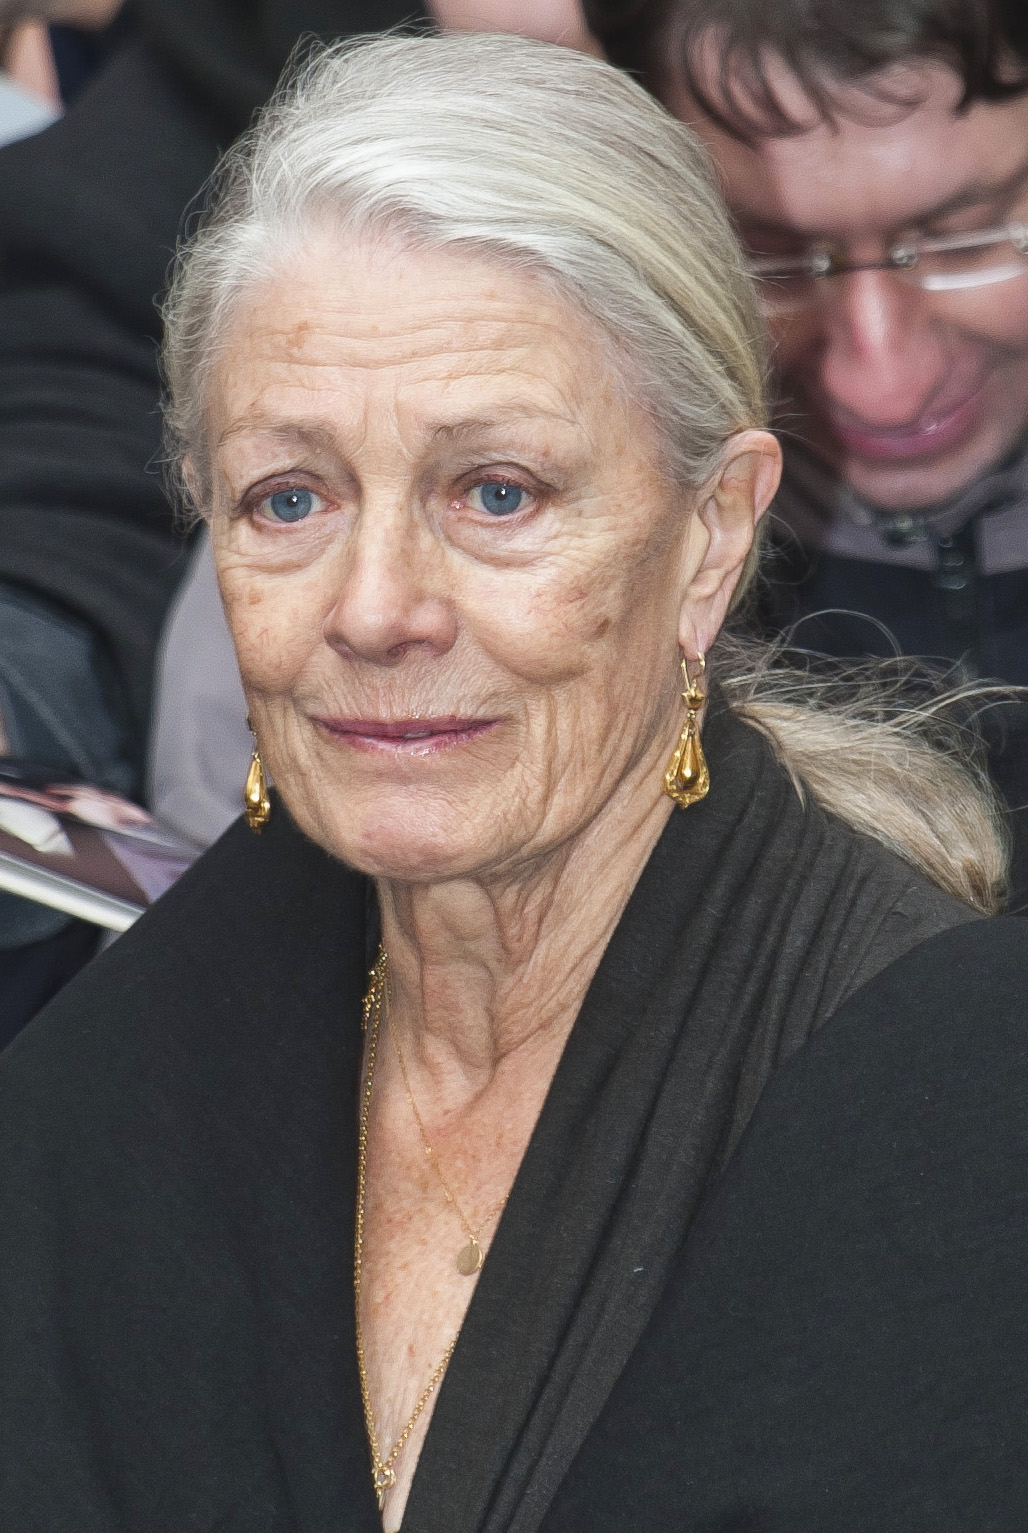 vanessa redgrave meryl streepvanessa redgrave imdb, vanessa redgrave filmography, vanessa redgrave 1970, vanessa redgrave autobiography book, vanessa redgrave meryl streep, vanessa redgrave daughters, vanessa redgrave son, vanessa redgrave for gucci, vanessa redgrave wiki, vanessa redgrave filmweb, vanessa redgrave films, vanessa redgrave agatha christie, vanessa redgrave 2017, vanessa redgrave virginia woolf, vanessa redgrave dancing with the stars, vanessa redgrave 80, vanessa redgrave malata, vanessa redgrave foto, vanessa redgrave young, vanessa redgrave photo